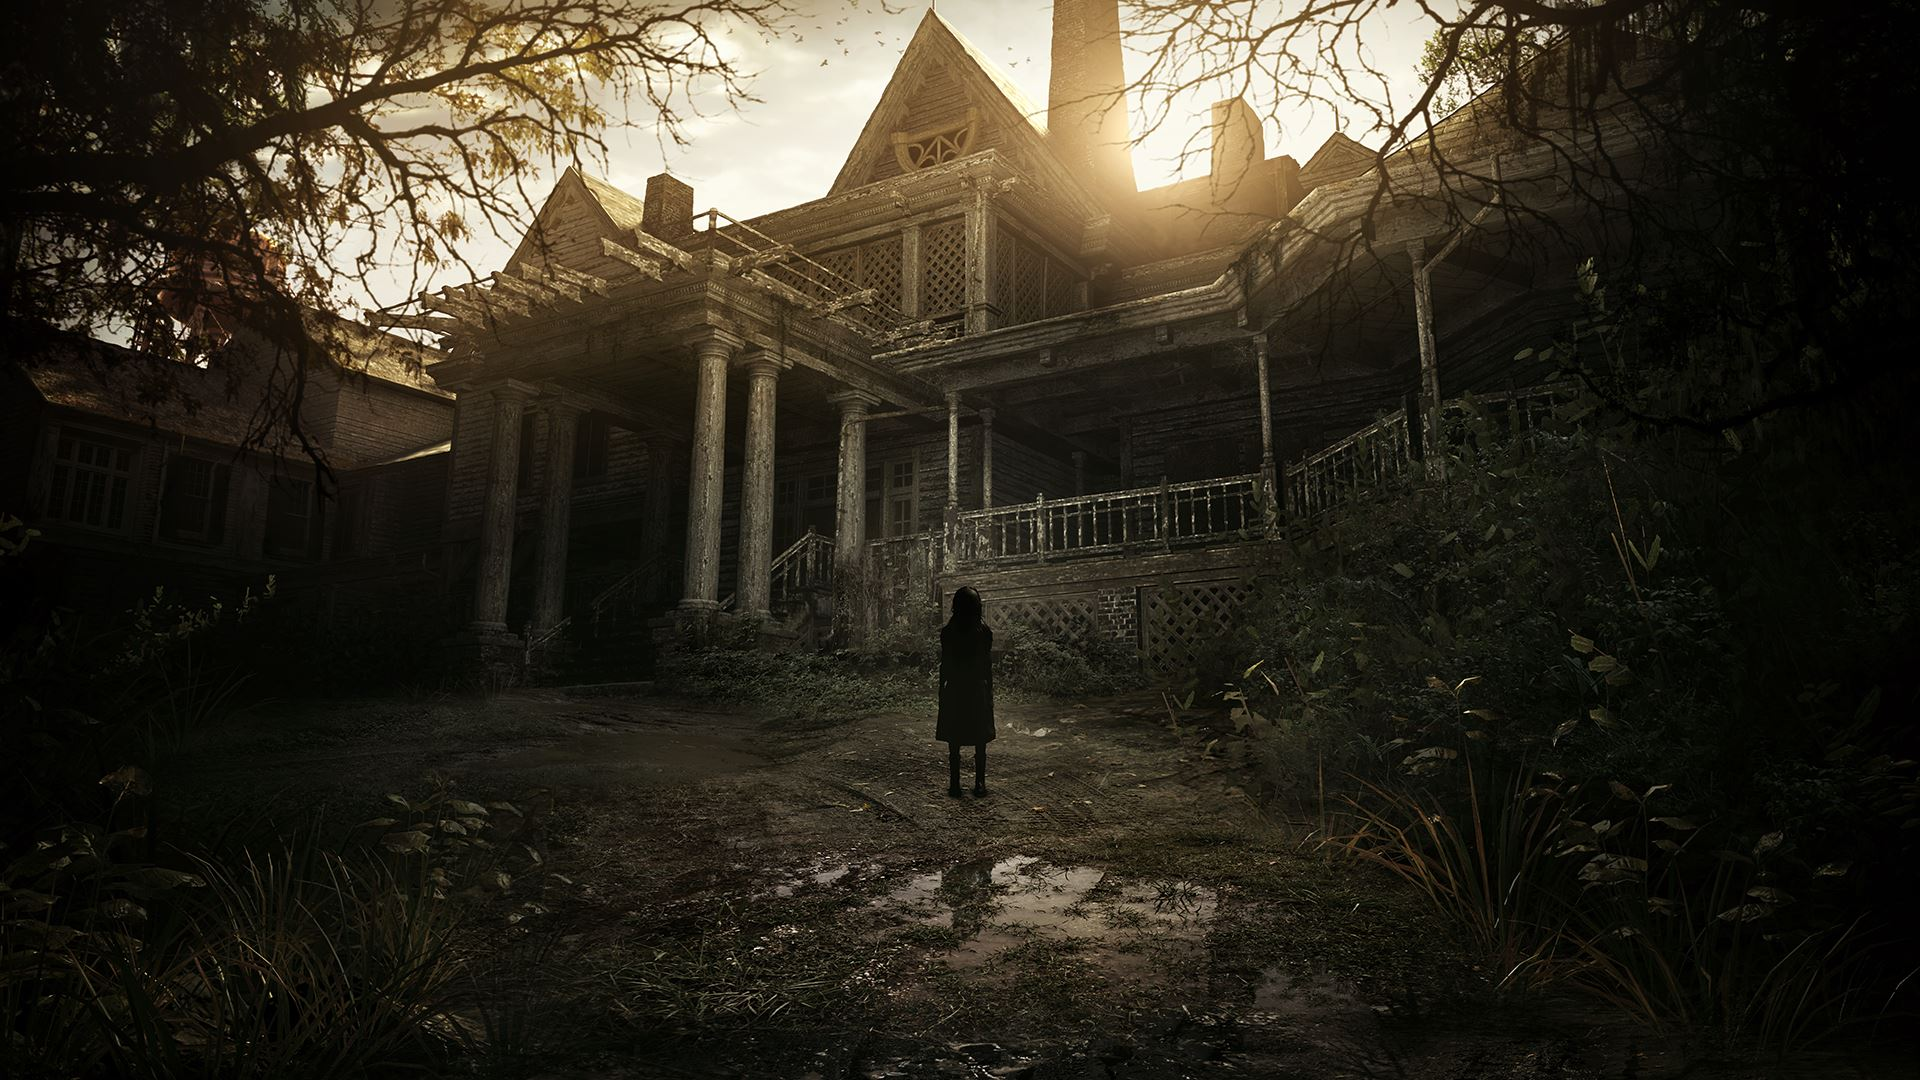 More than 85,000 people are playing 'Resident Evil 7' in VR (and other fun facts)